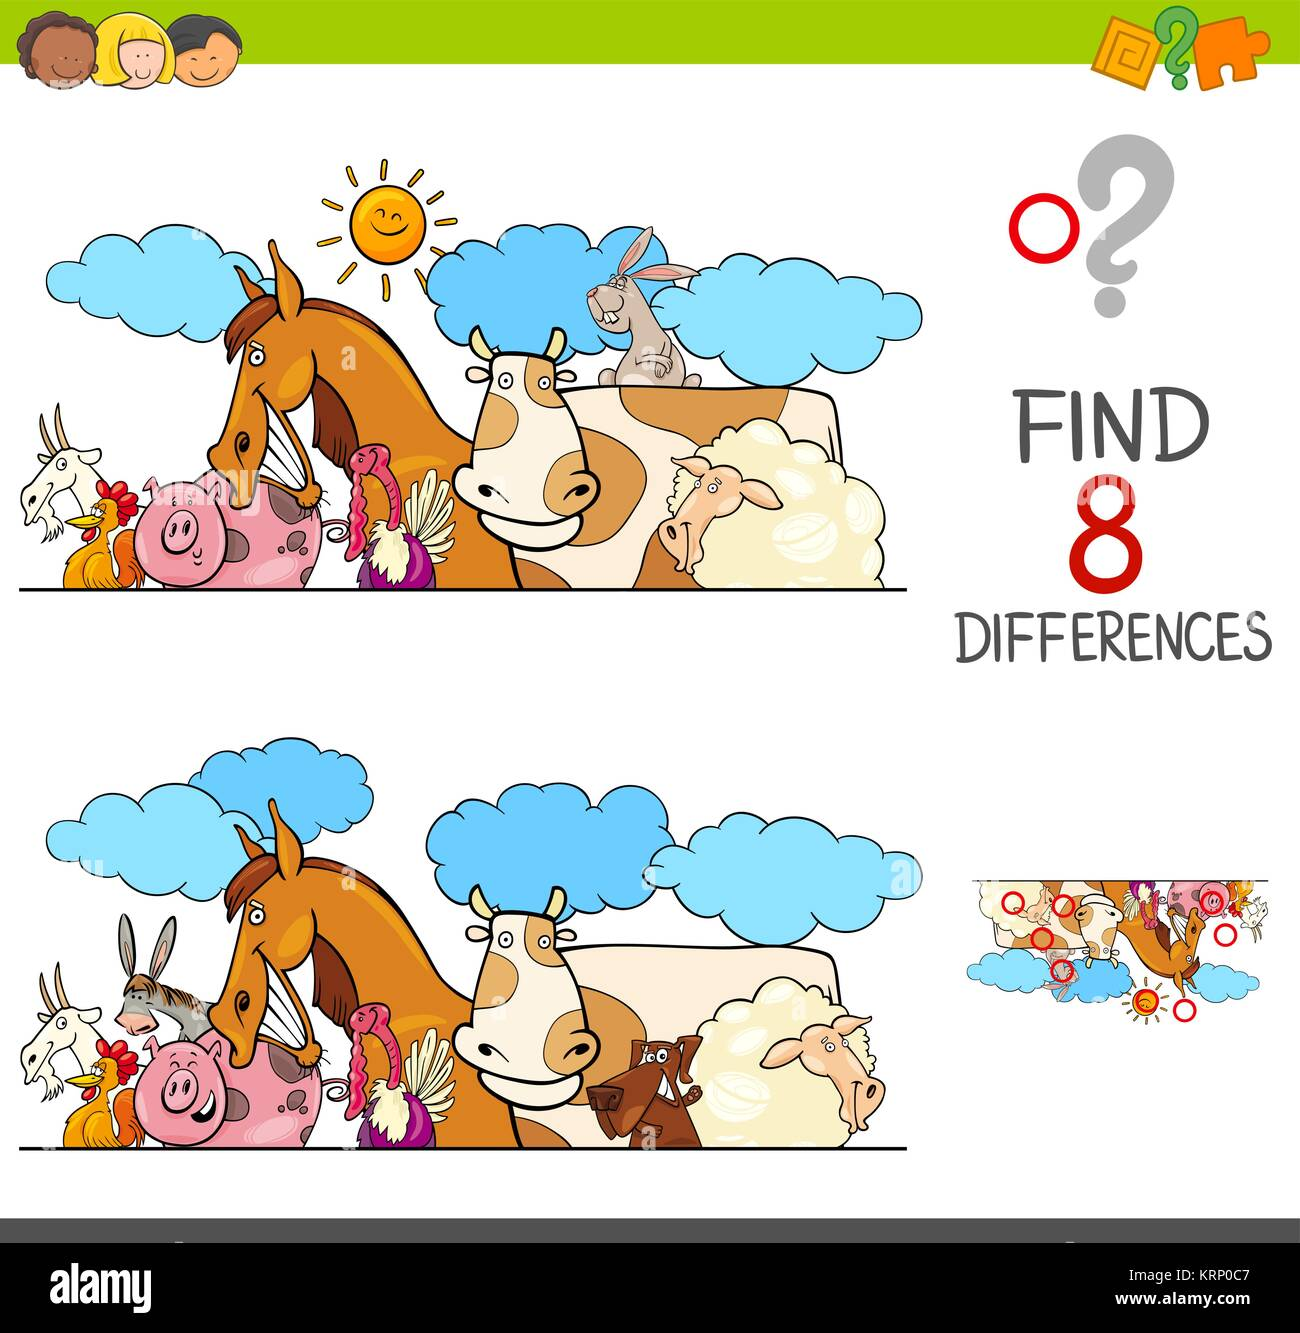 Cartoon Illustration Of Finding Eight Differences Between